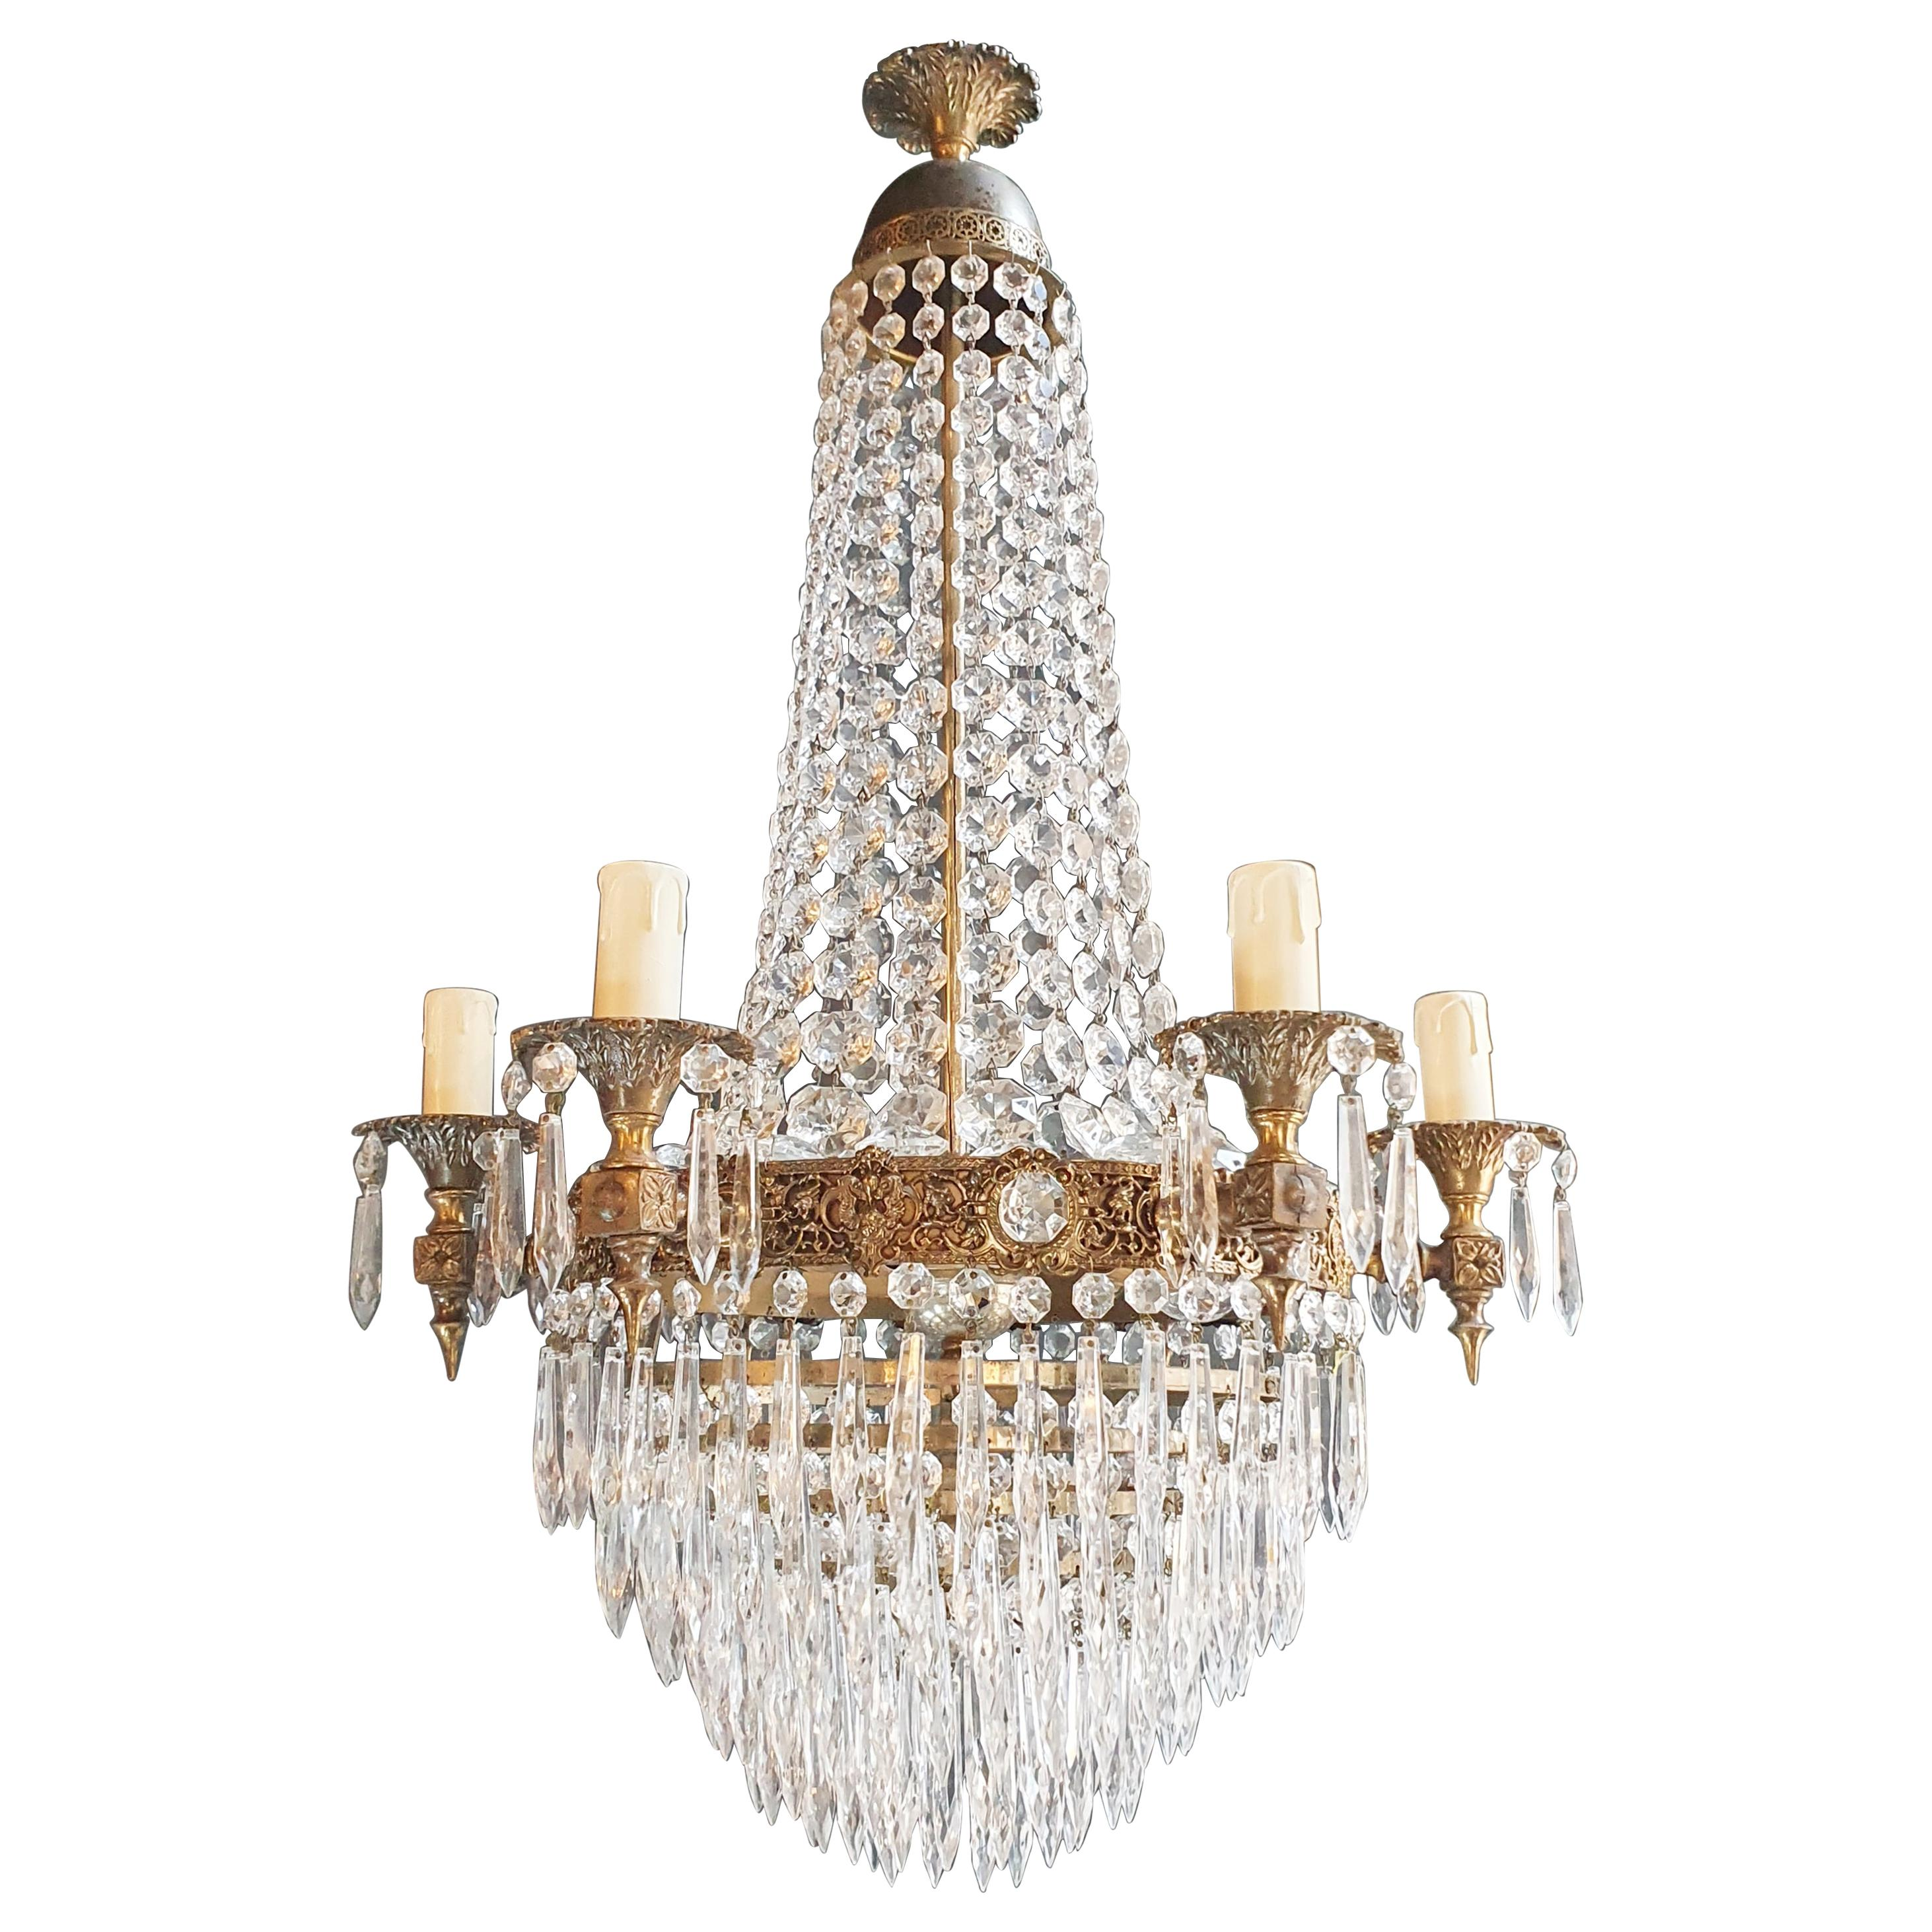 Empire Brass Sac a Pearl Chandelier Crystal Lustre Ceiling Antique